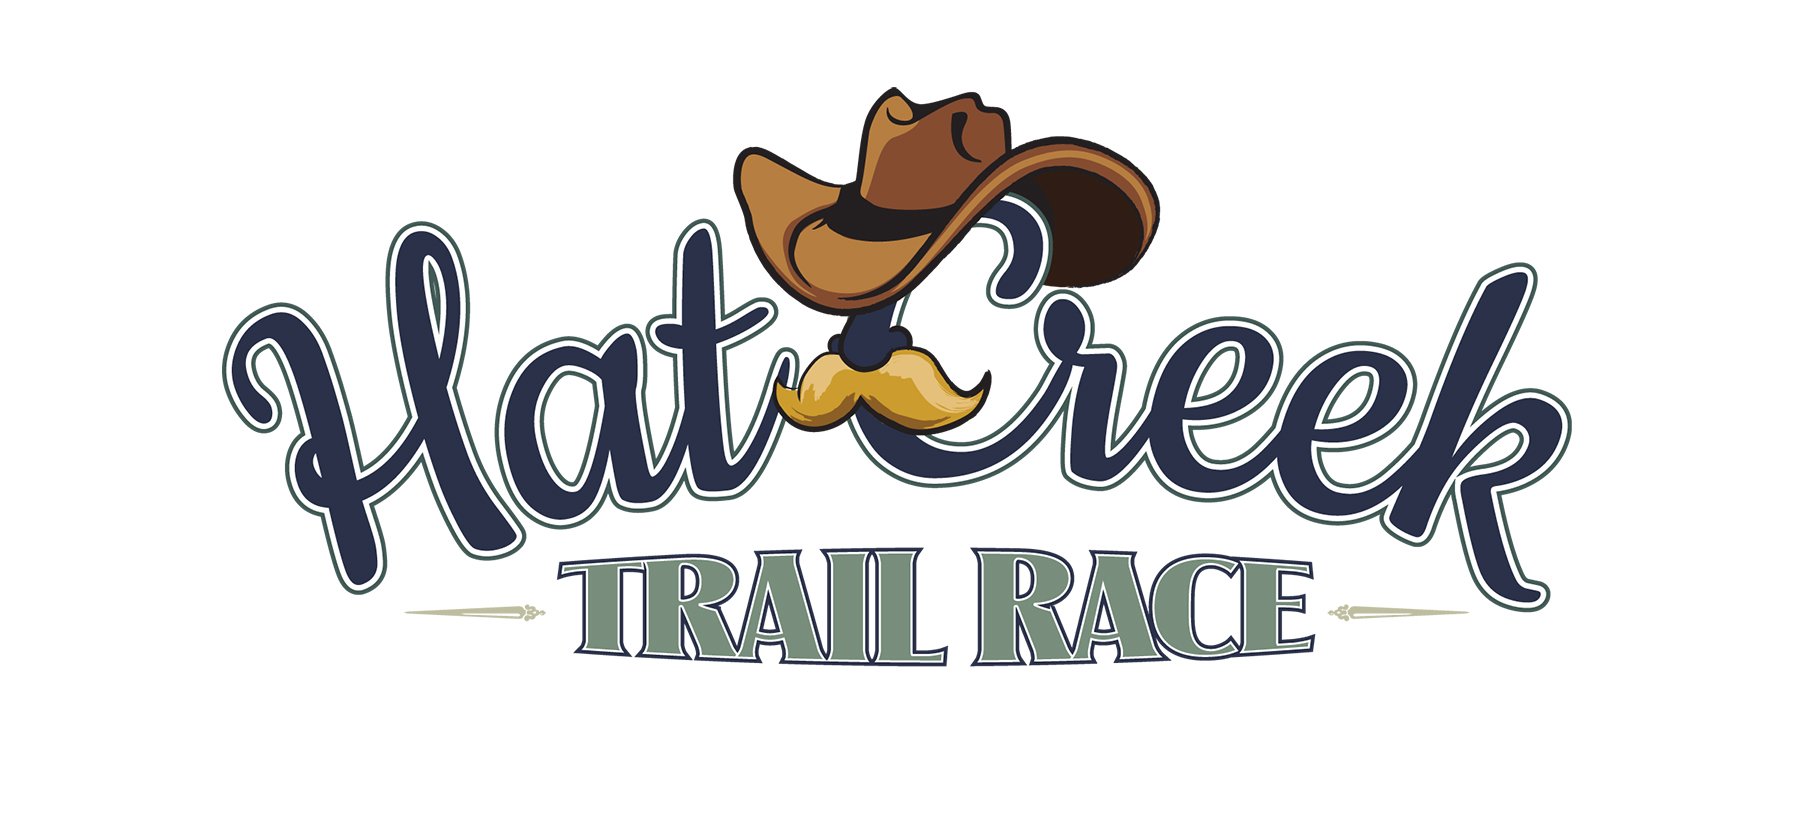 Hat Creek Trail Race.